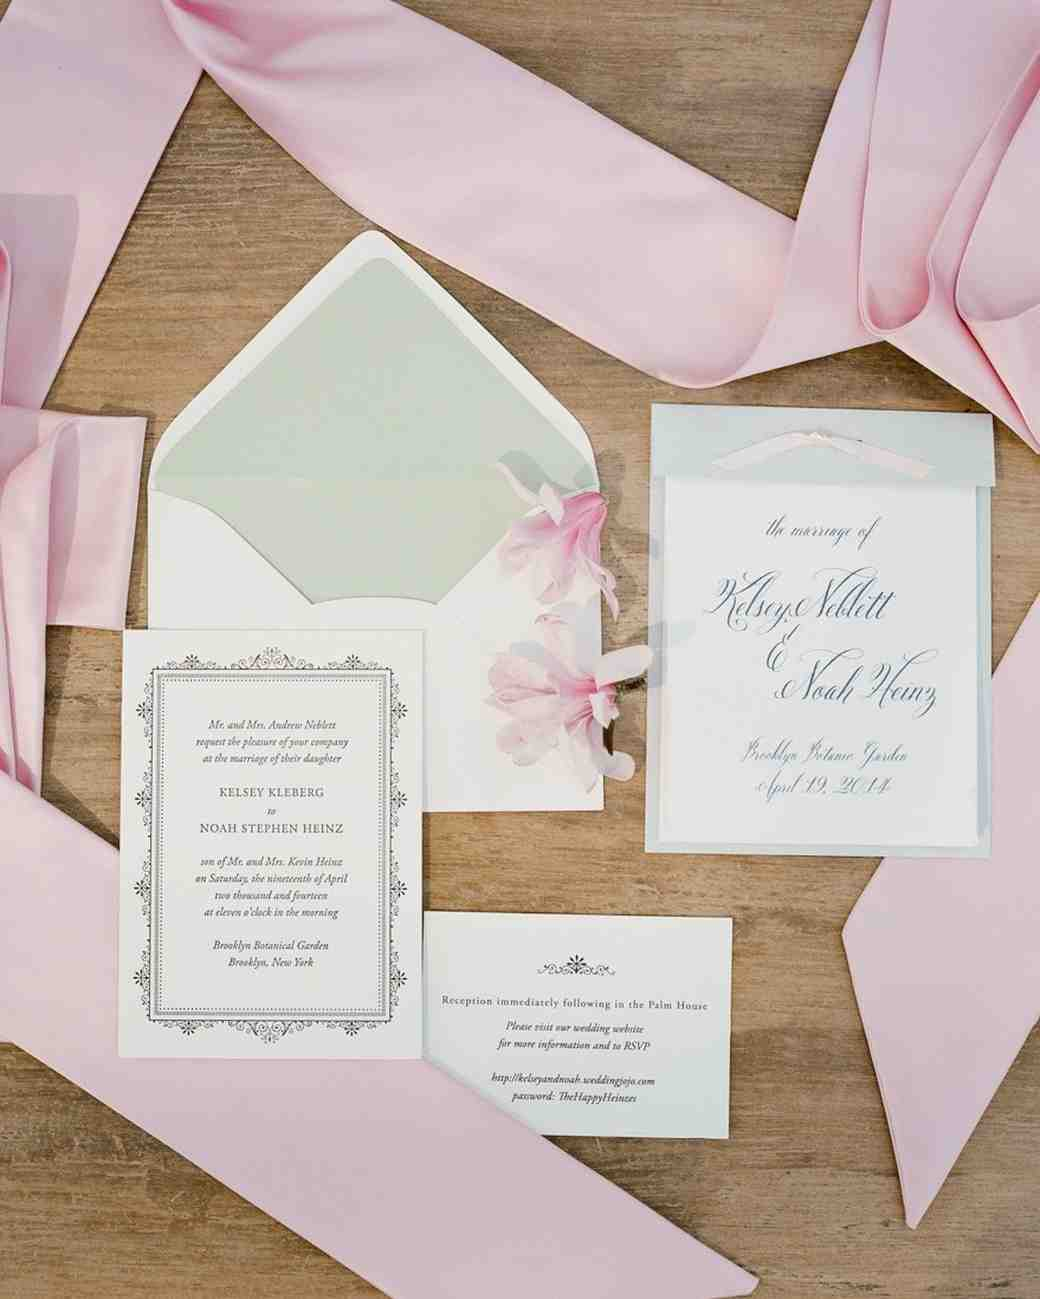 pastel wedding invitation - 57 Unique Wedding Vows Examples Impression